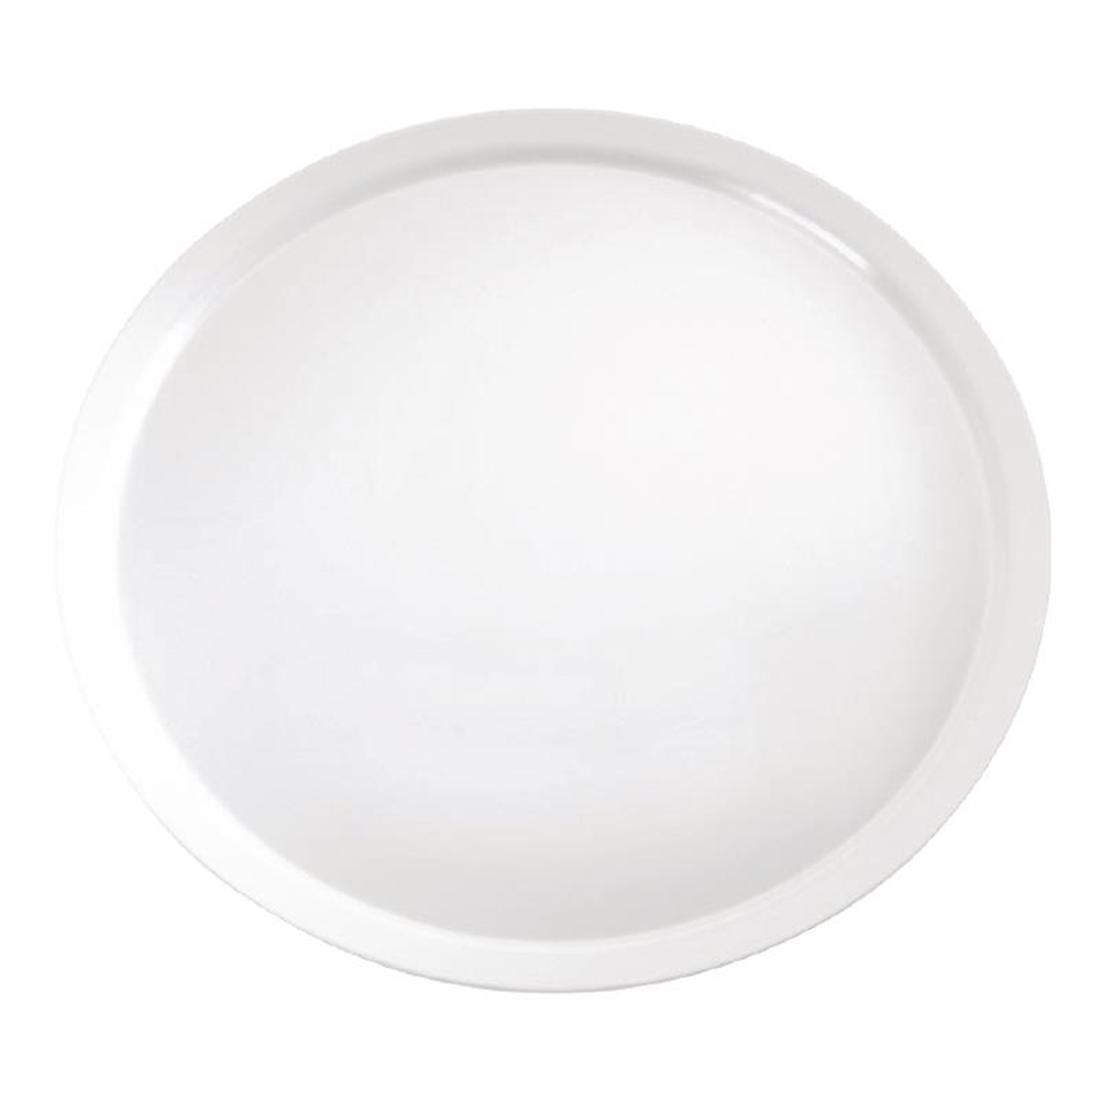 APS Pure Melamine Round Tray White 510mm - Each - GF152